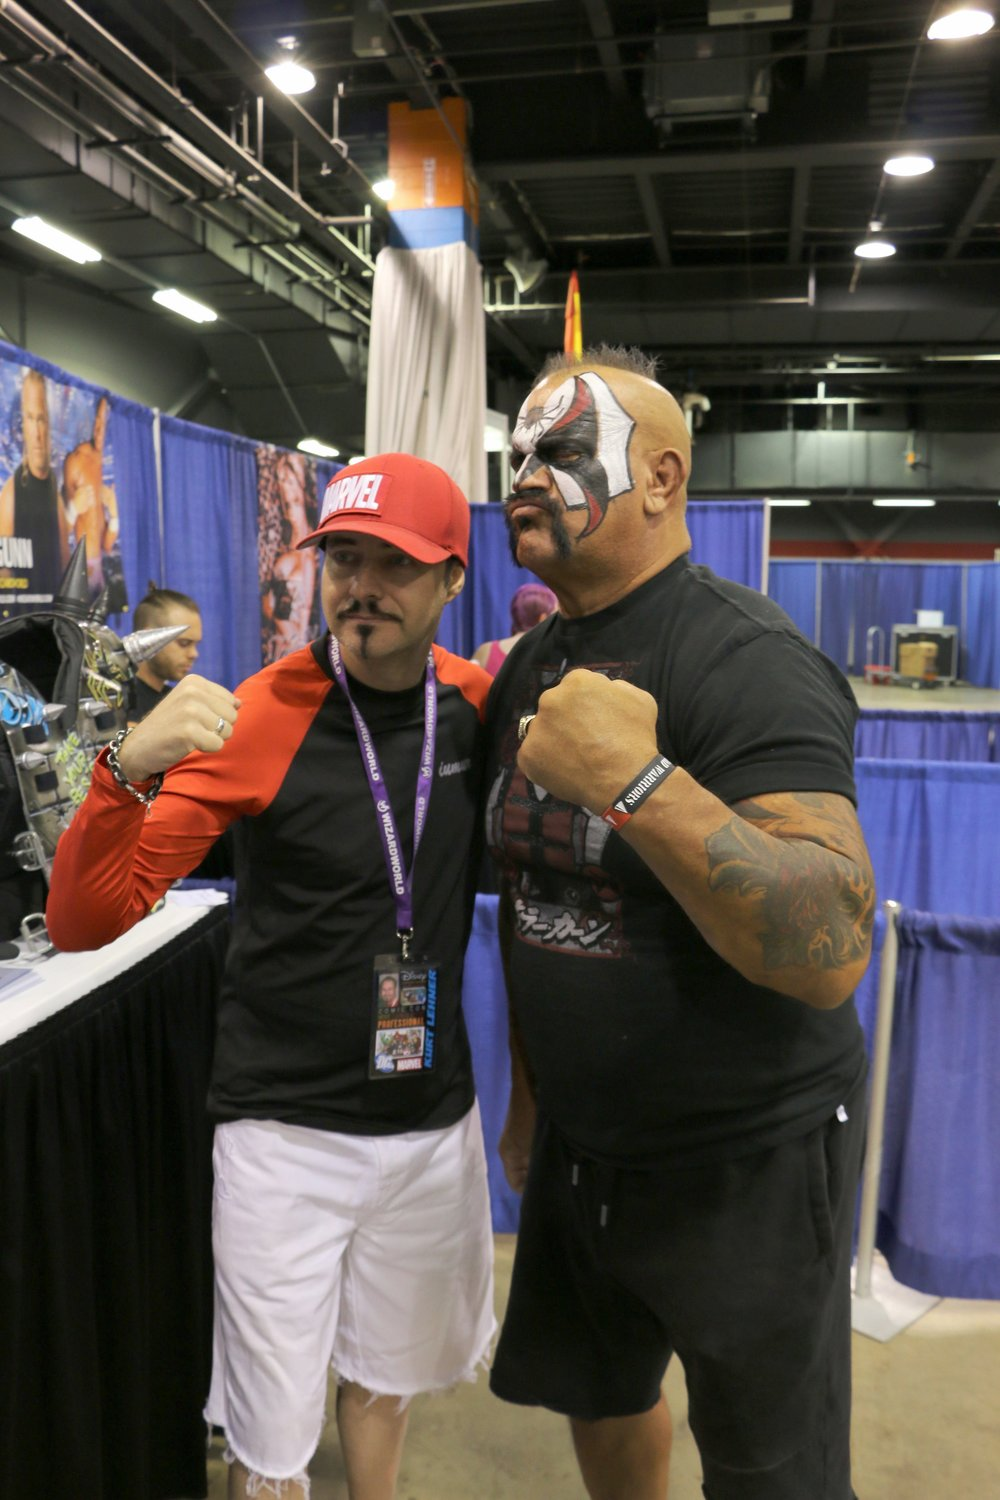 Famous artist and illustrator Kurt Lehner, left, who has worked for companies such as Marvel, Walt Disney Studios and DreamWorks, poses with legendary wrestler Road Warrior Animal at Wizard World Chicago at Donald E. Stephens Convention Center on Friday, August 24, 2018.  (Photo by Mike Pankow)